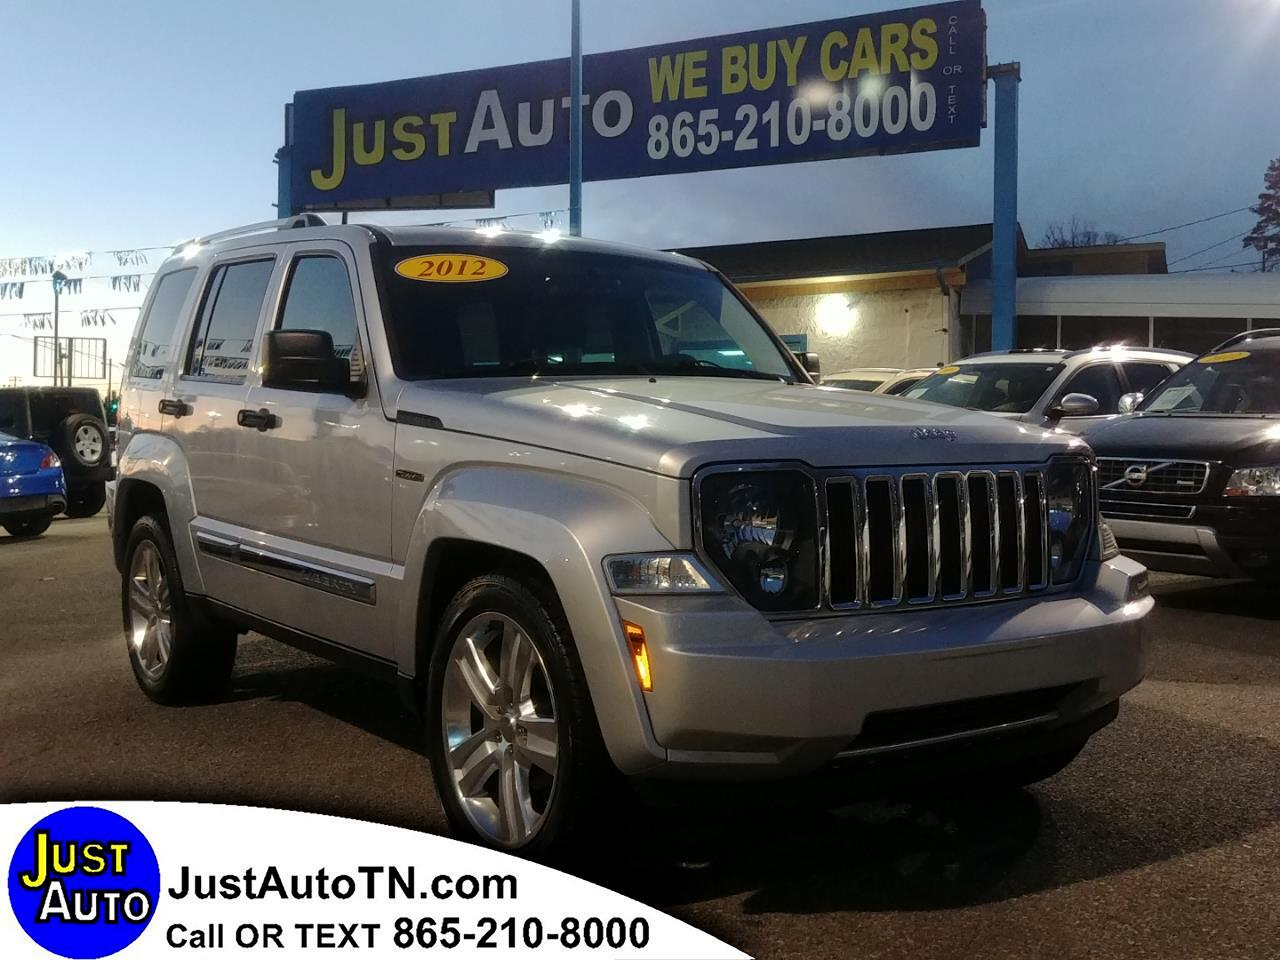 Jeep Liberty RWD 4dr Limited Jet 2012